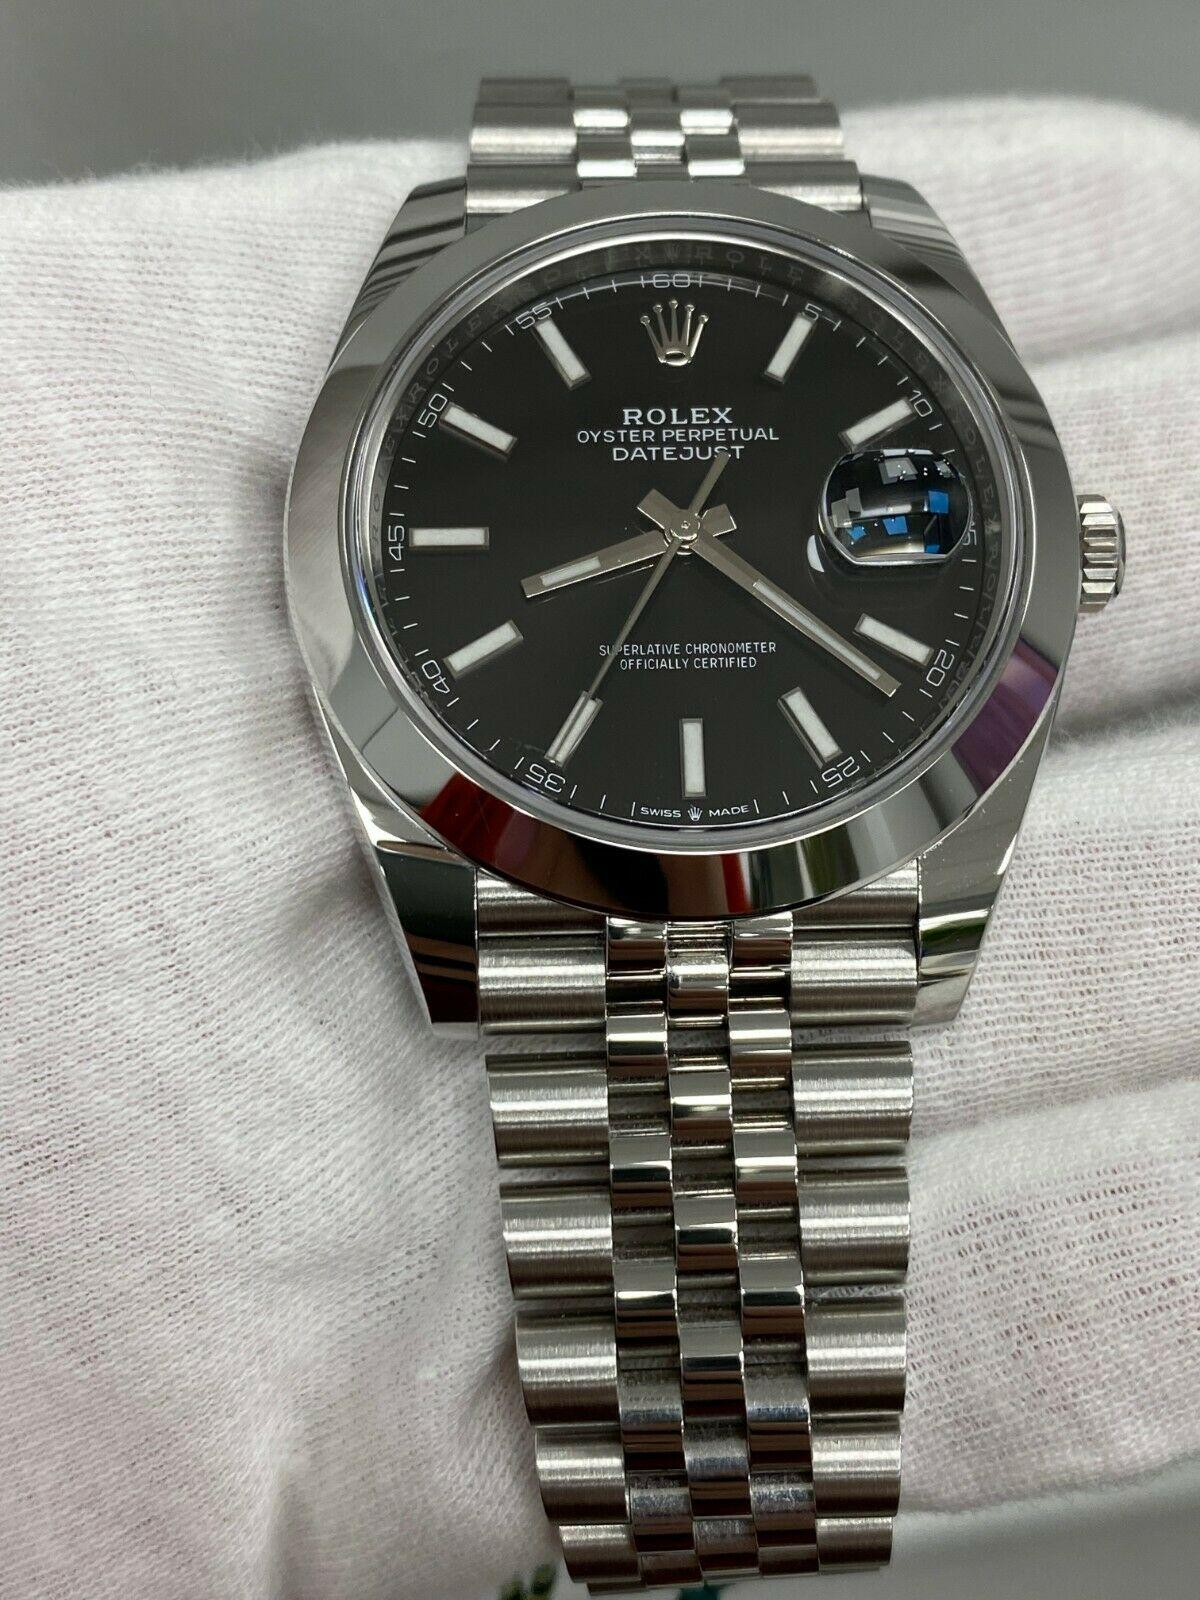 BRAND NEW Rolex Datejust 41 Black 126300 Stainless Steel Watch Box Papers 2020